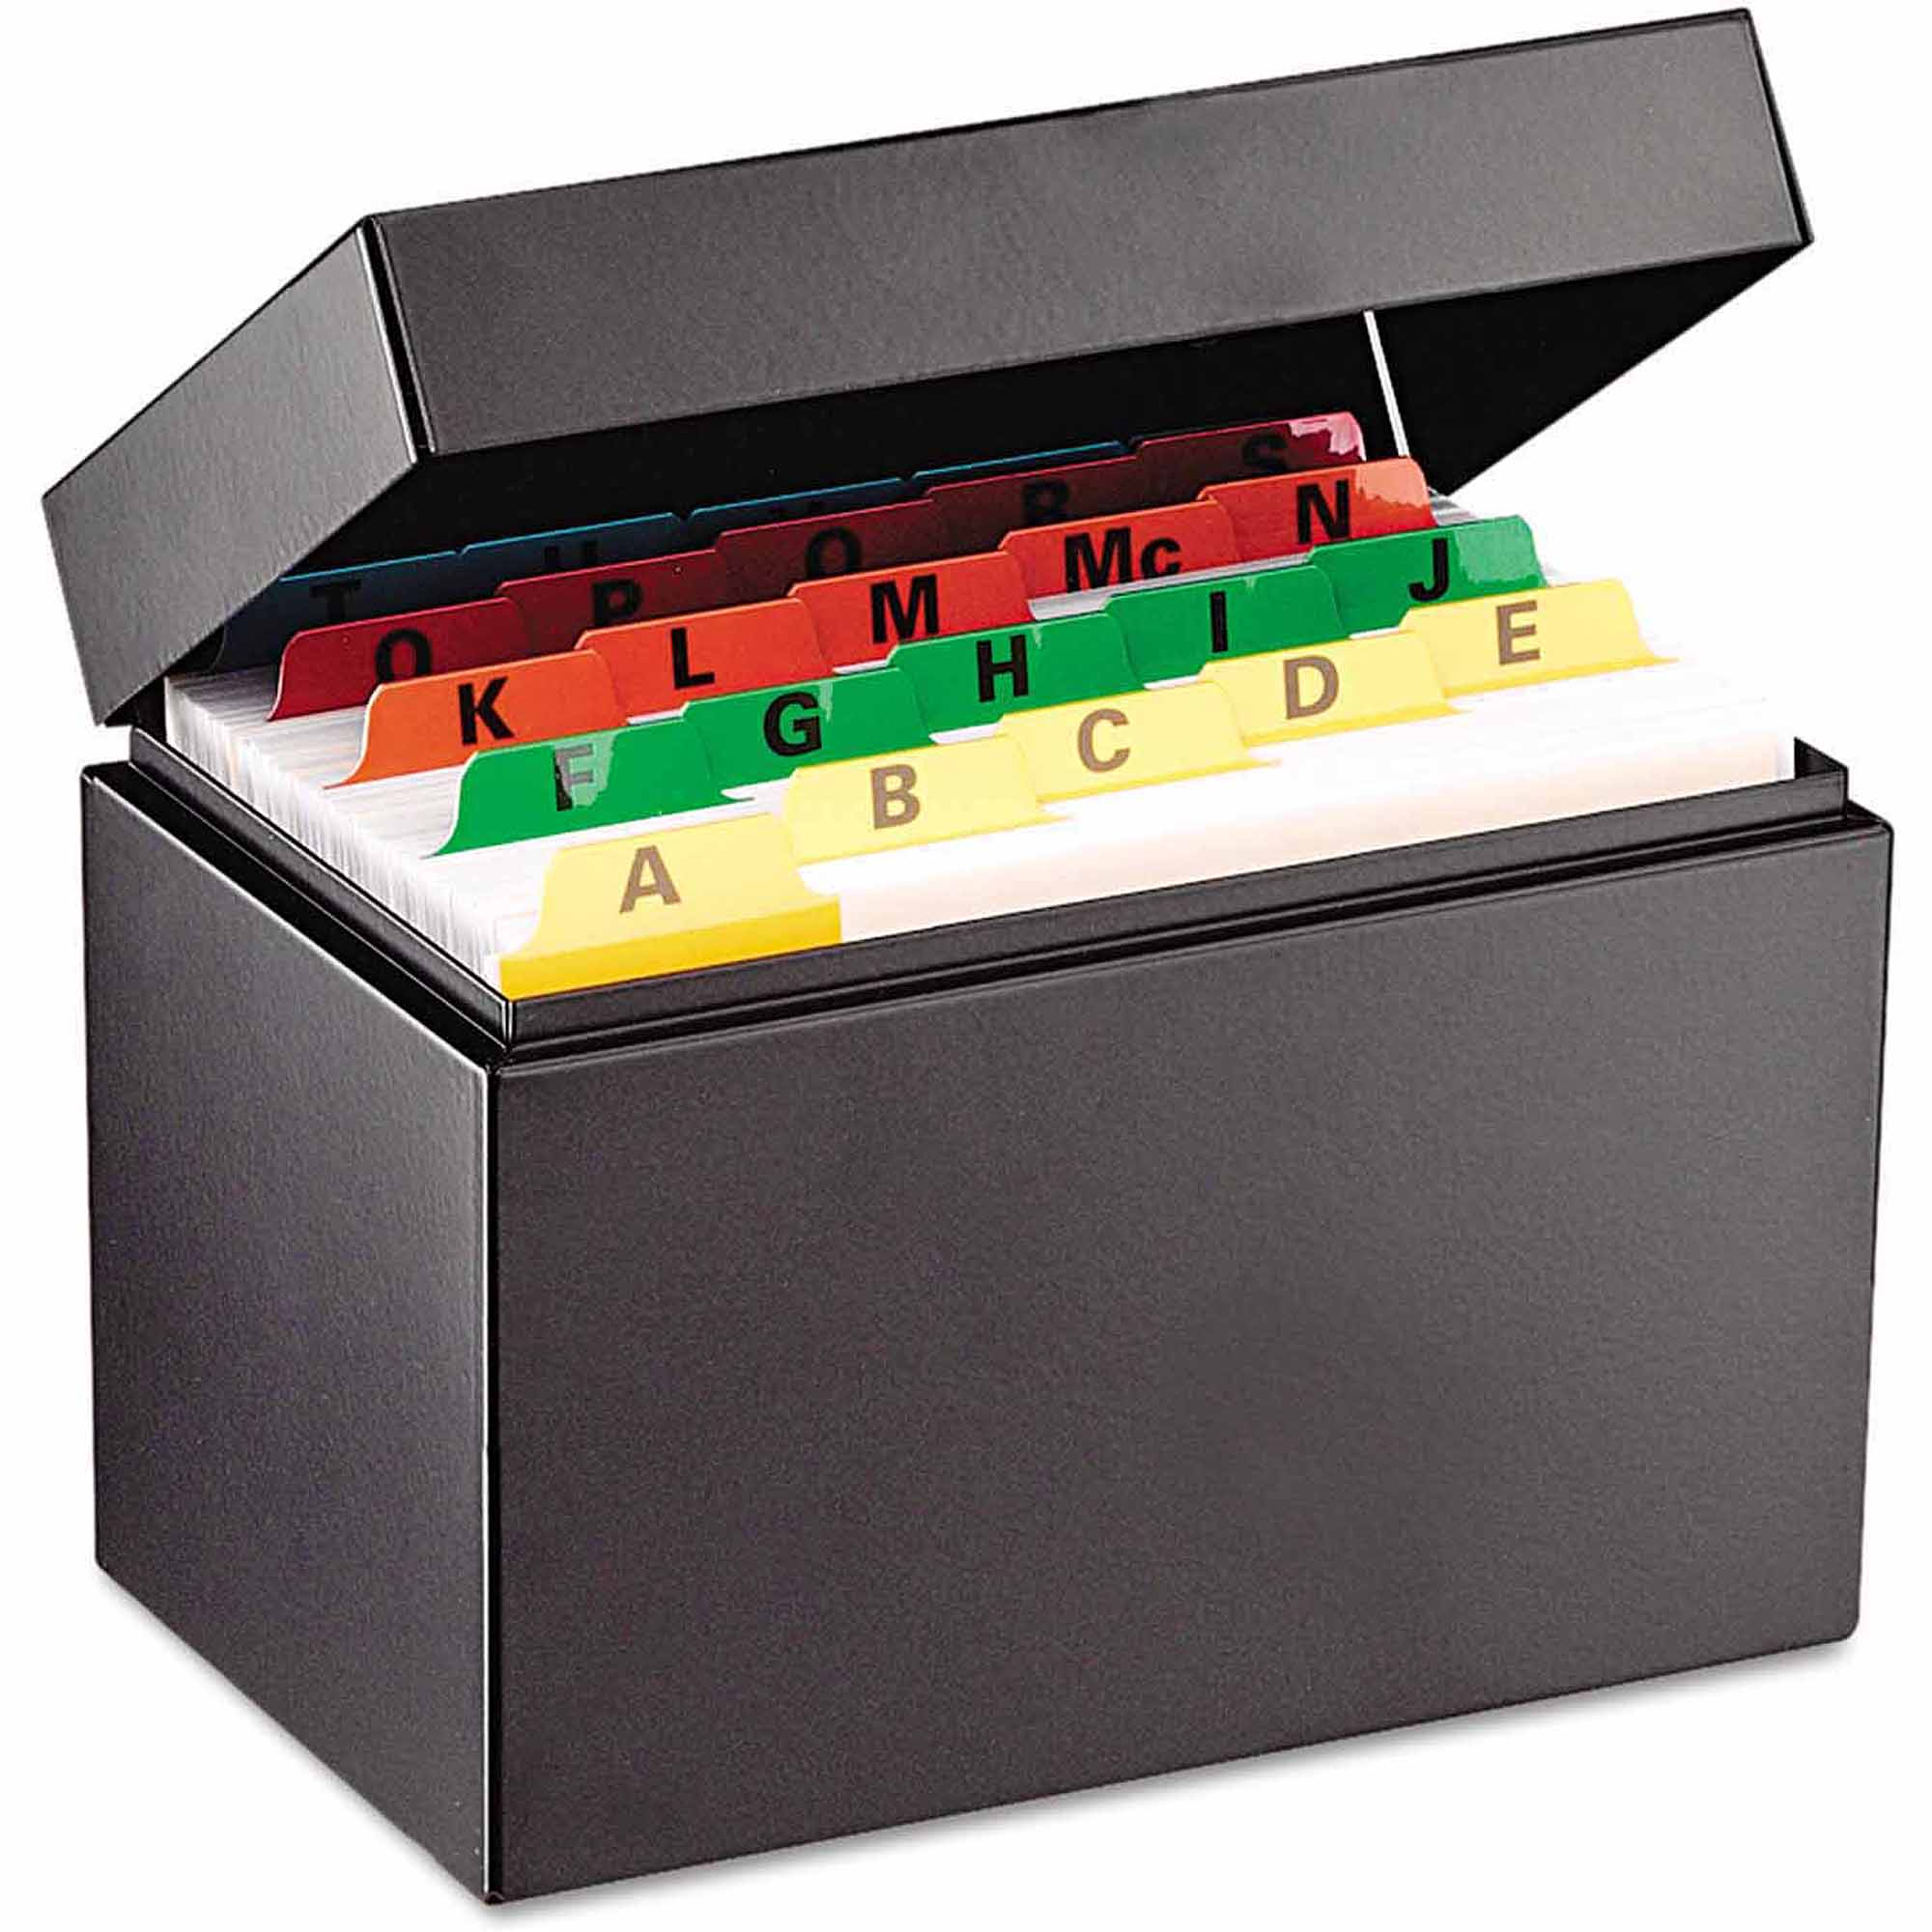 "SteelMaster Index Card File, Holds 400 4"" x 6"" cards"